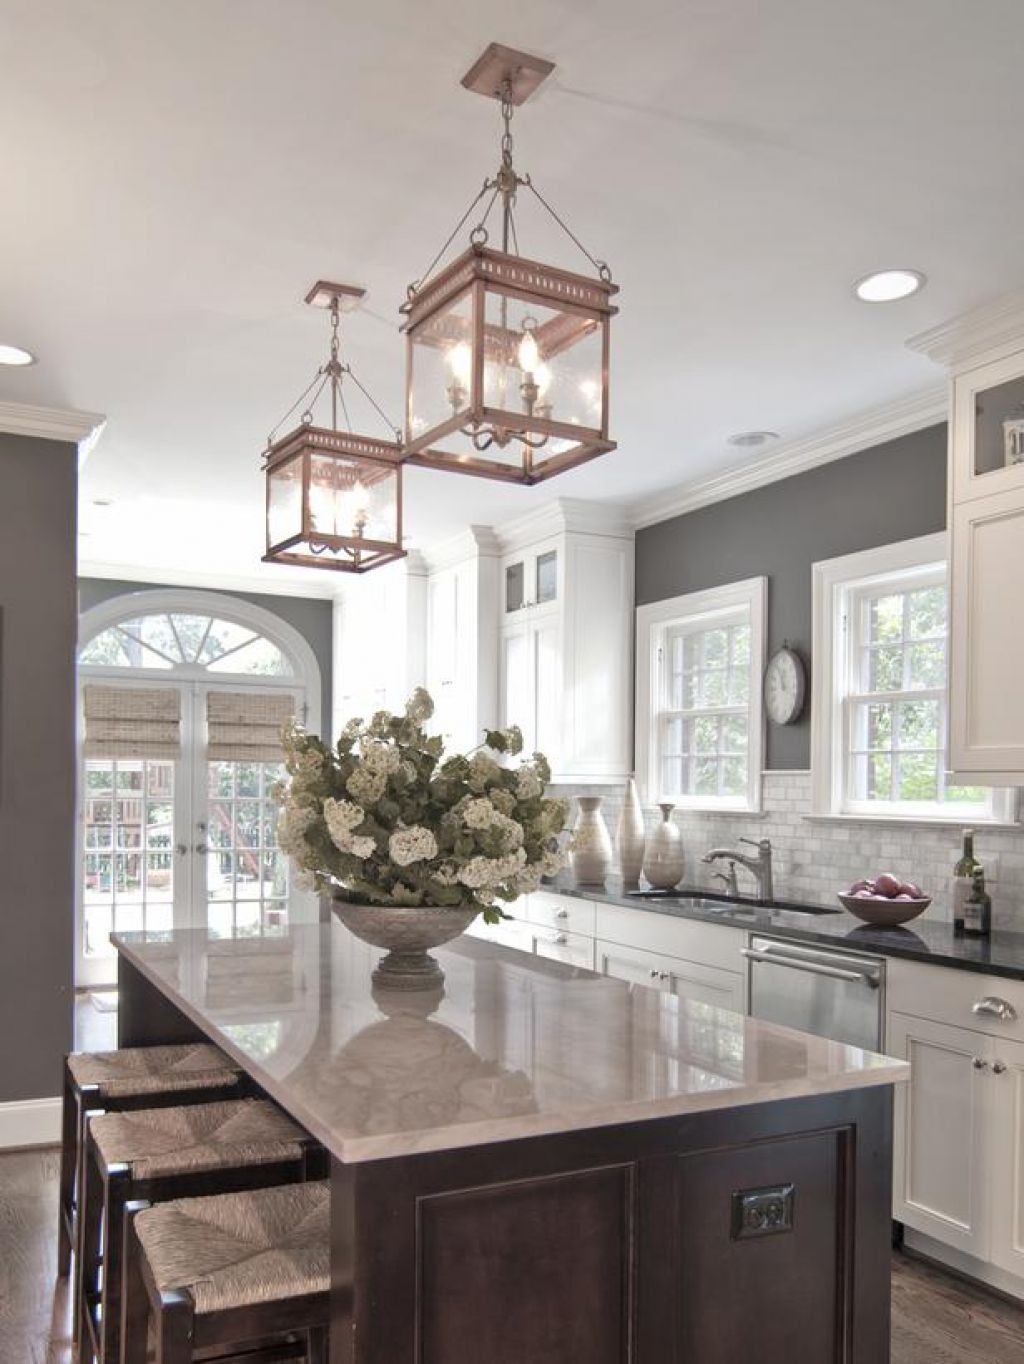 Classic Kitchen Pendant Lights Google Search Backyard Ideas - Classic kitchen pendant lighting